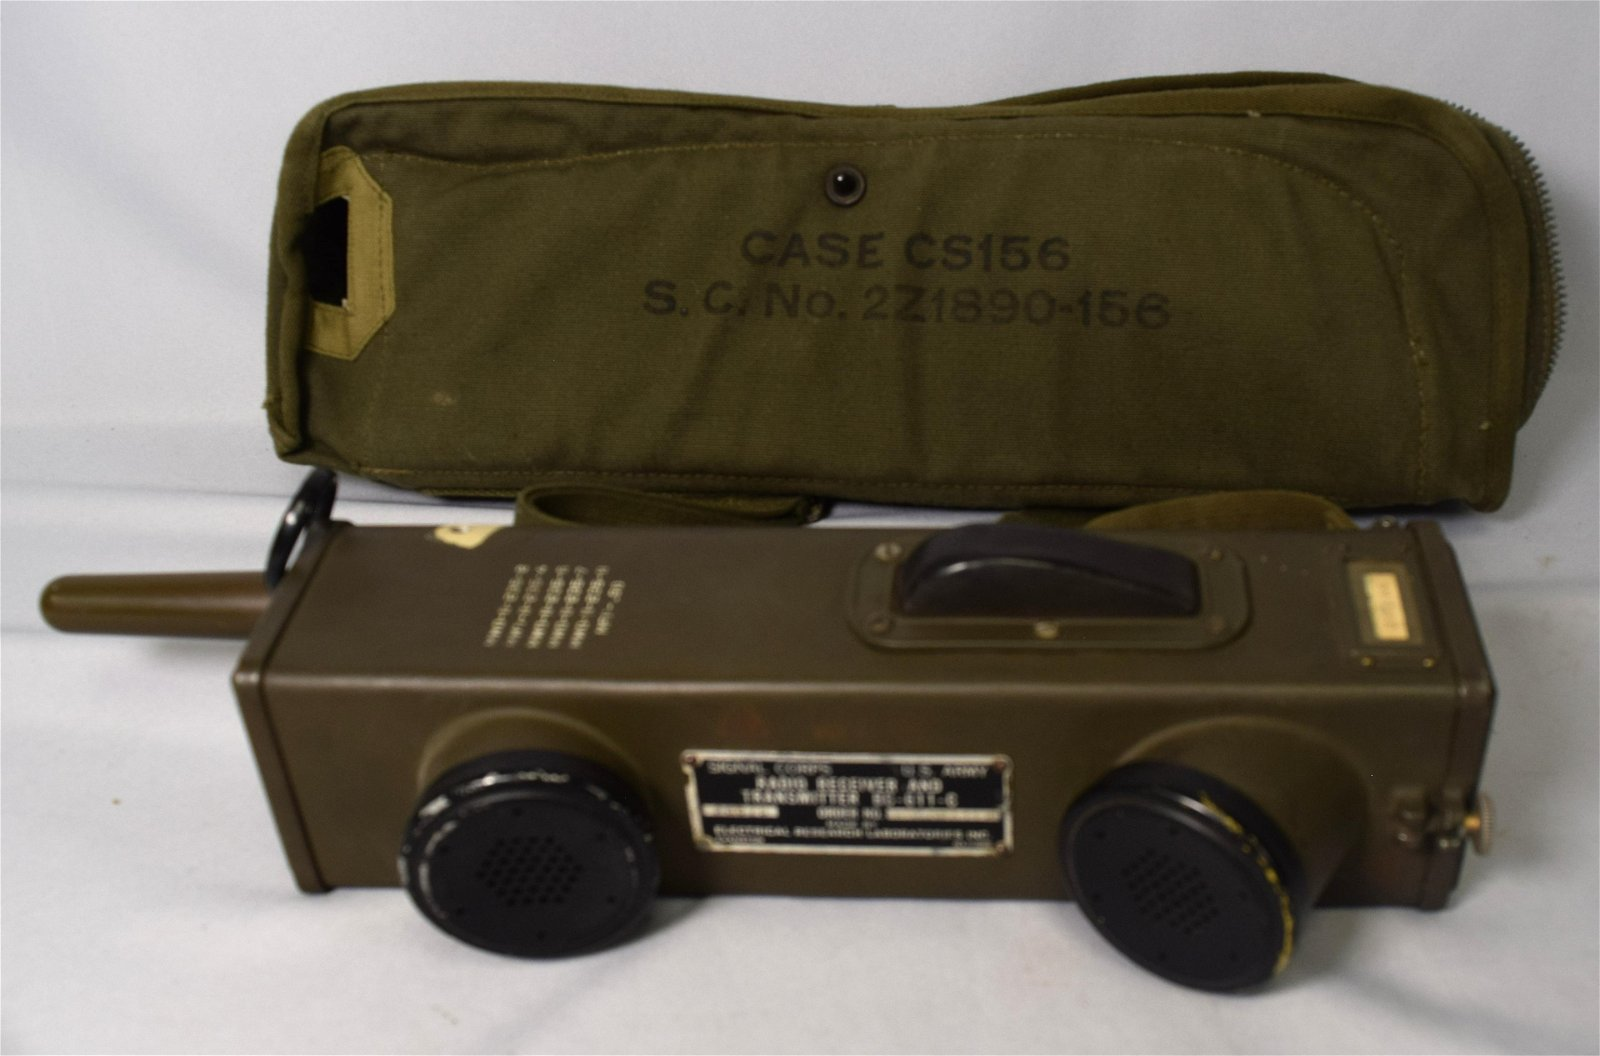 WWII US ARMY SIGNAL CORPS RADIO RECEIVER & TRANSMITTER: